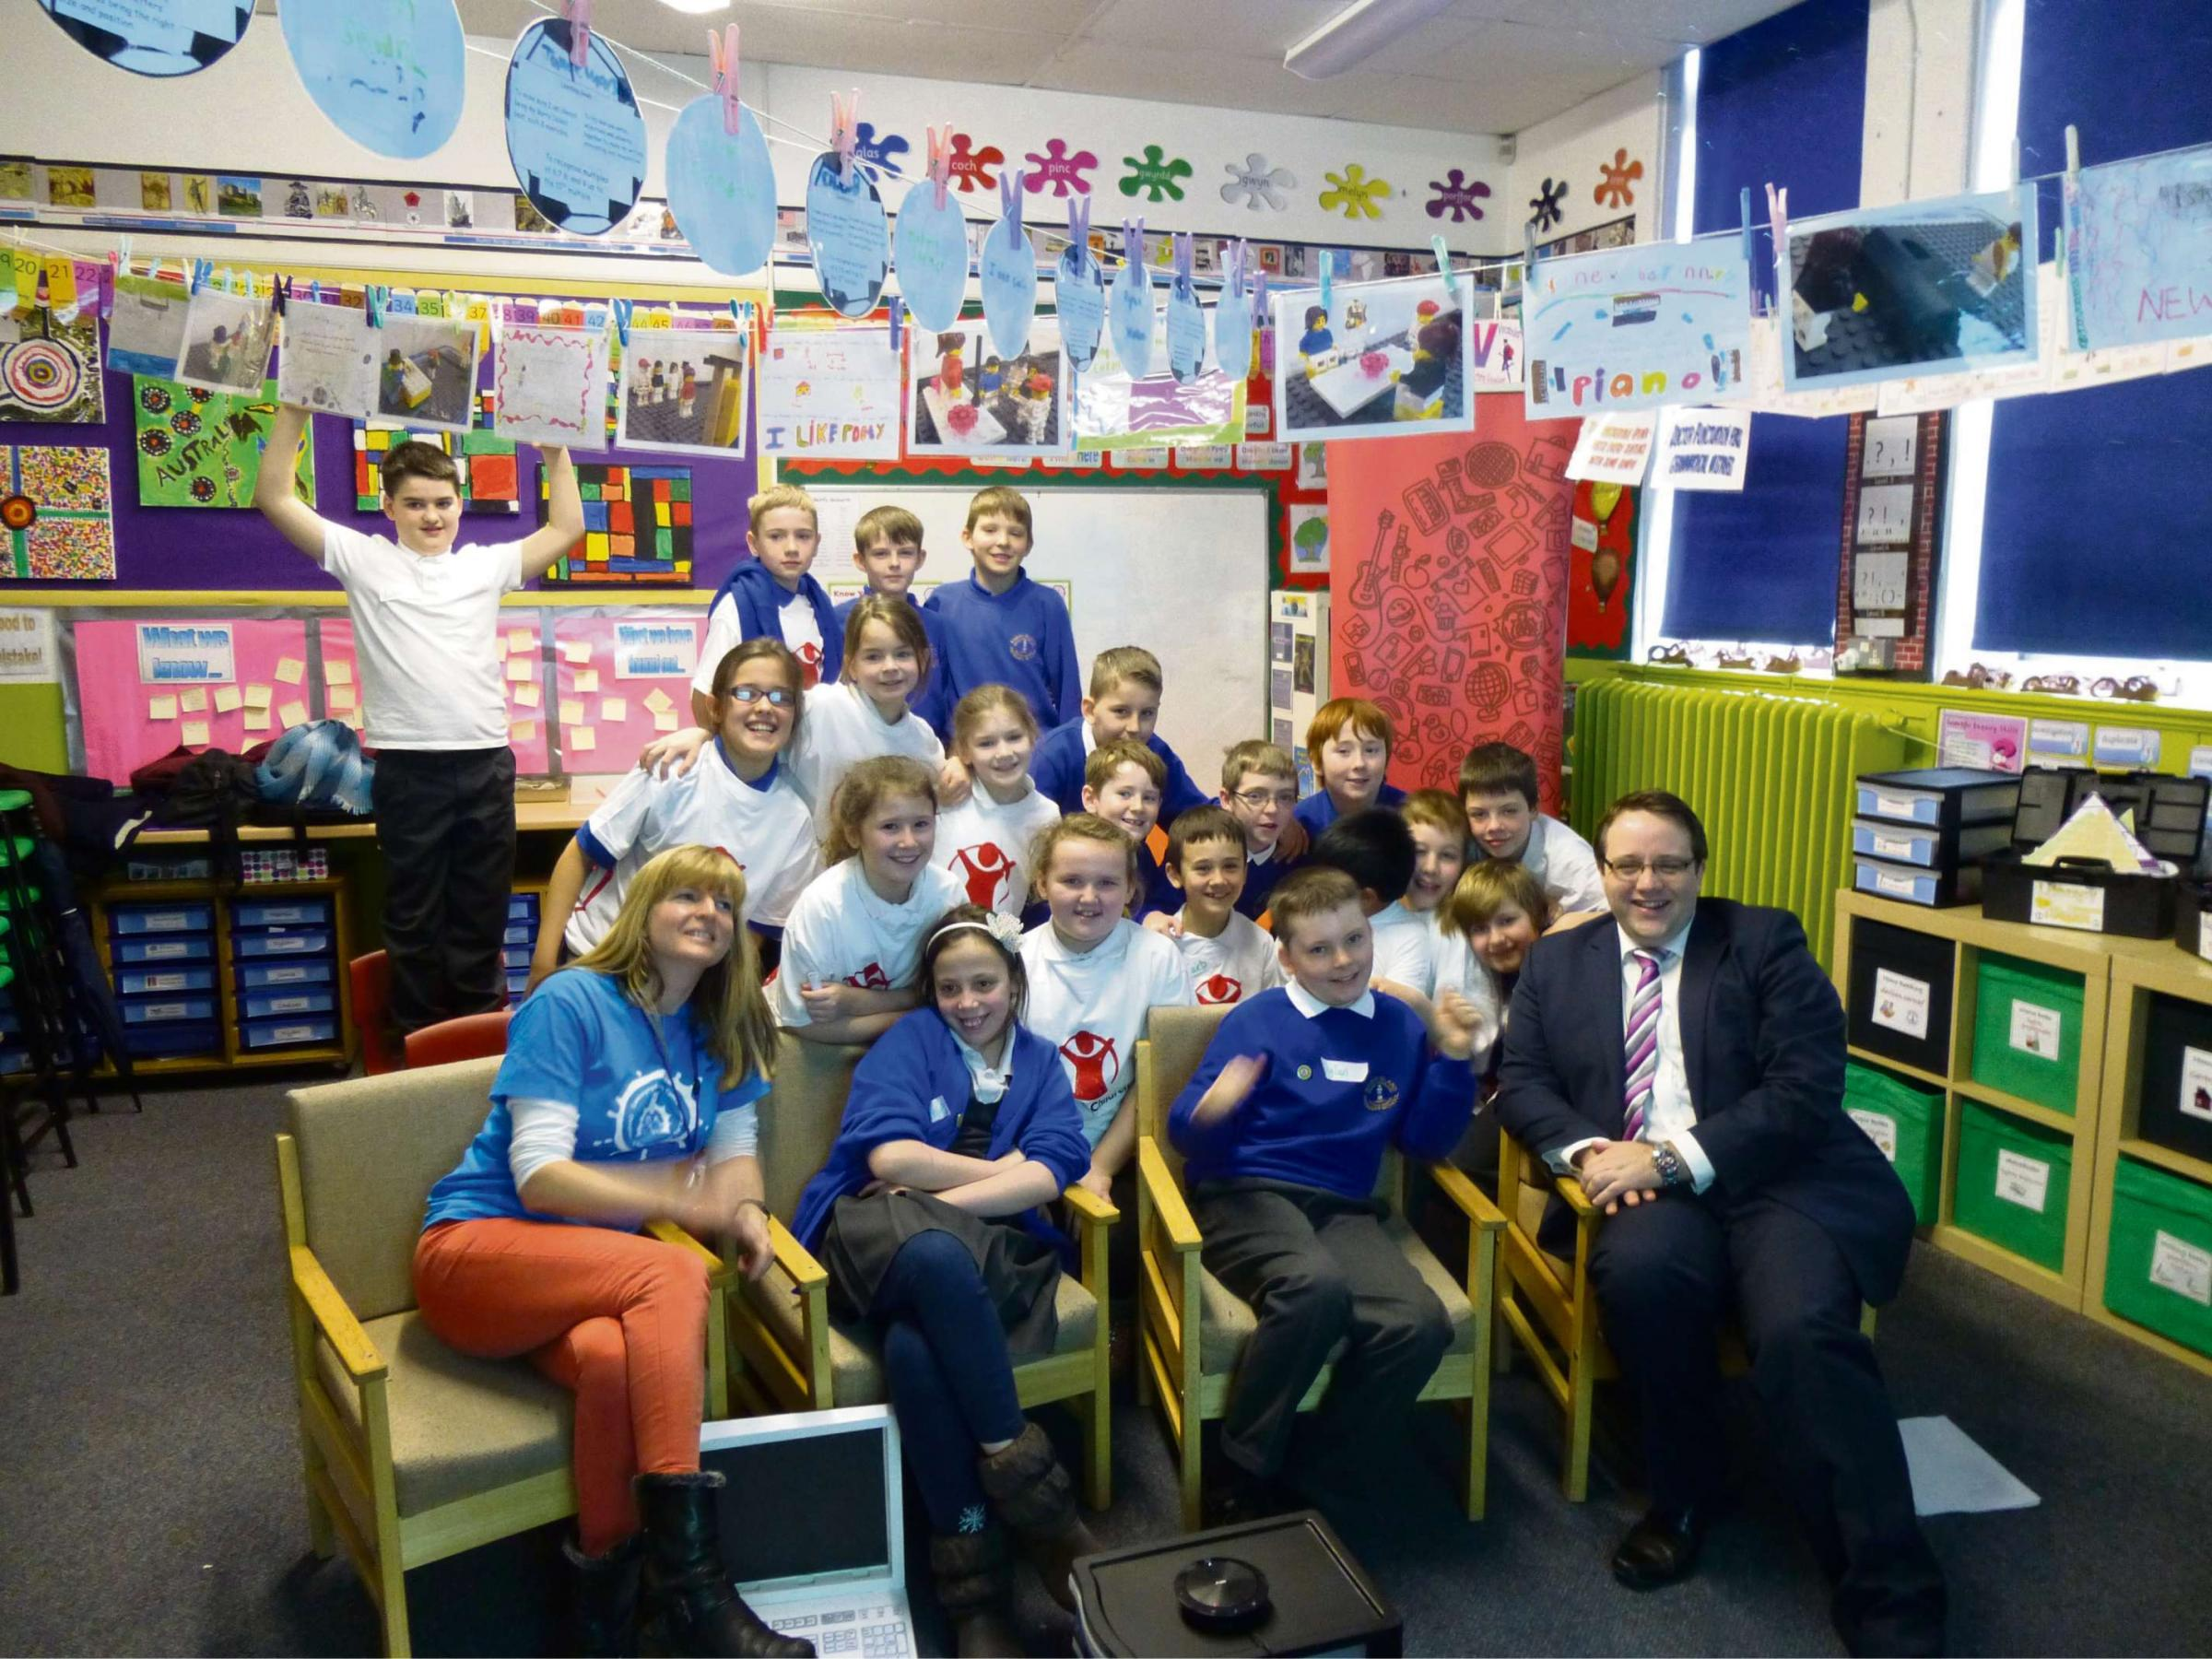 INTRICATE WEB: Barry Island primary pupils and Cllr Chris Elmore